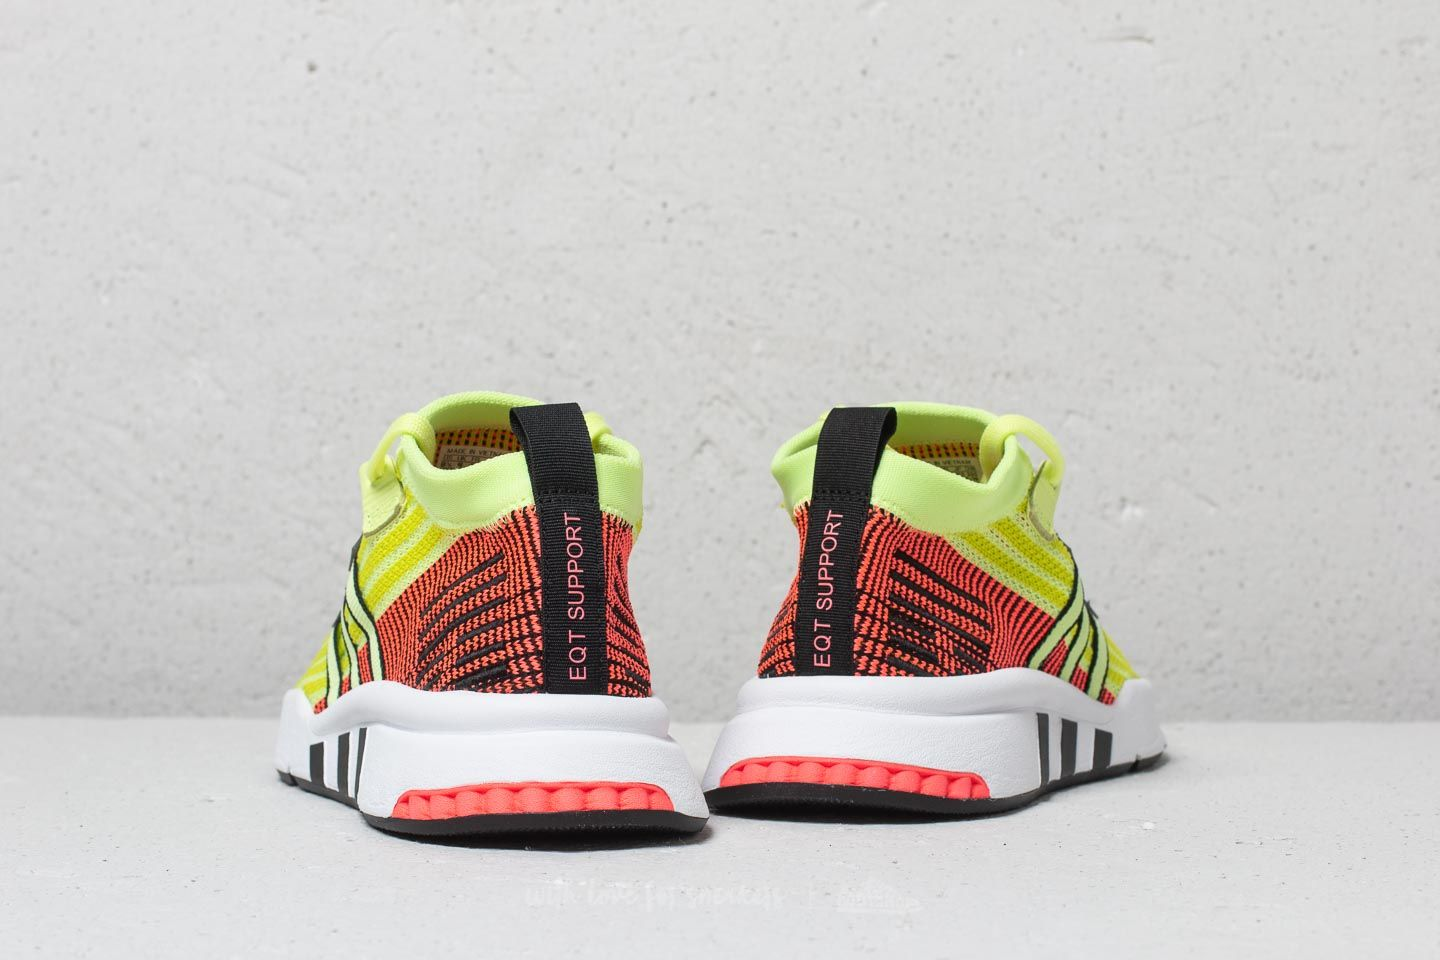 outlet store 3adc2 523f2 adidas-eqt-support-mid-adv-pk-glow-core-black-turbo.jpg